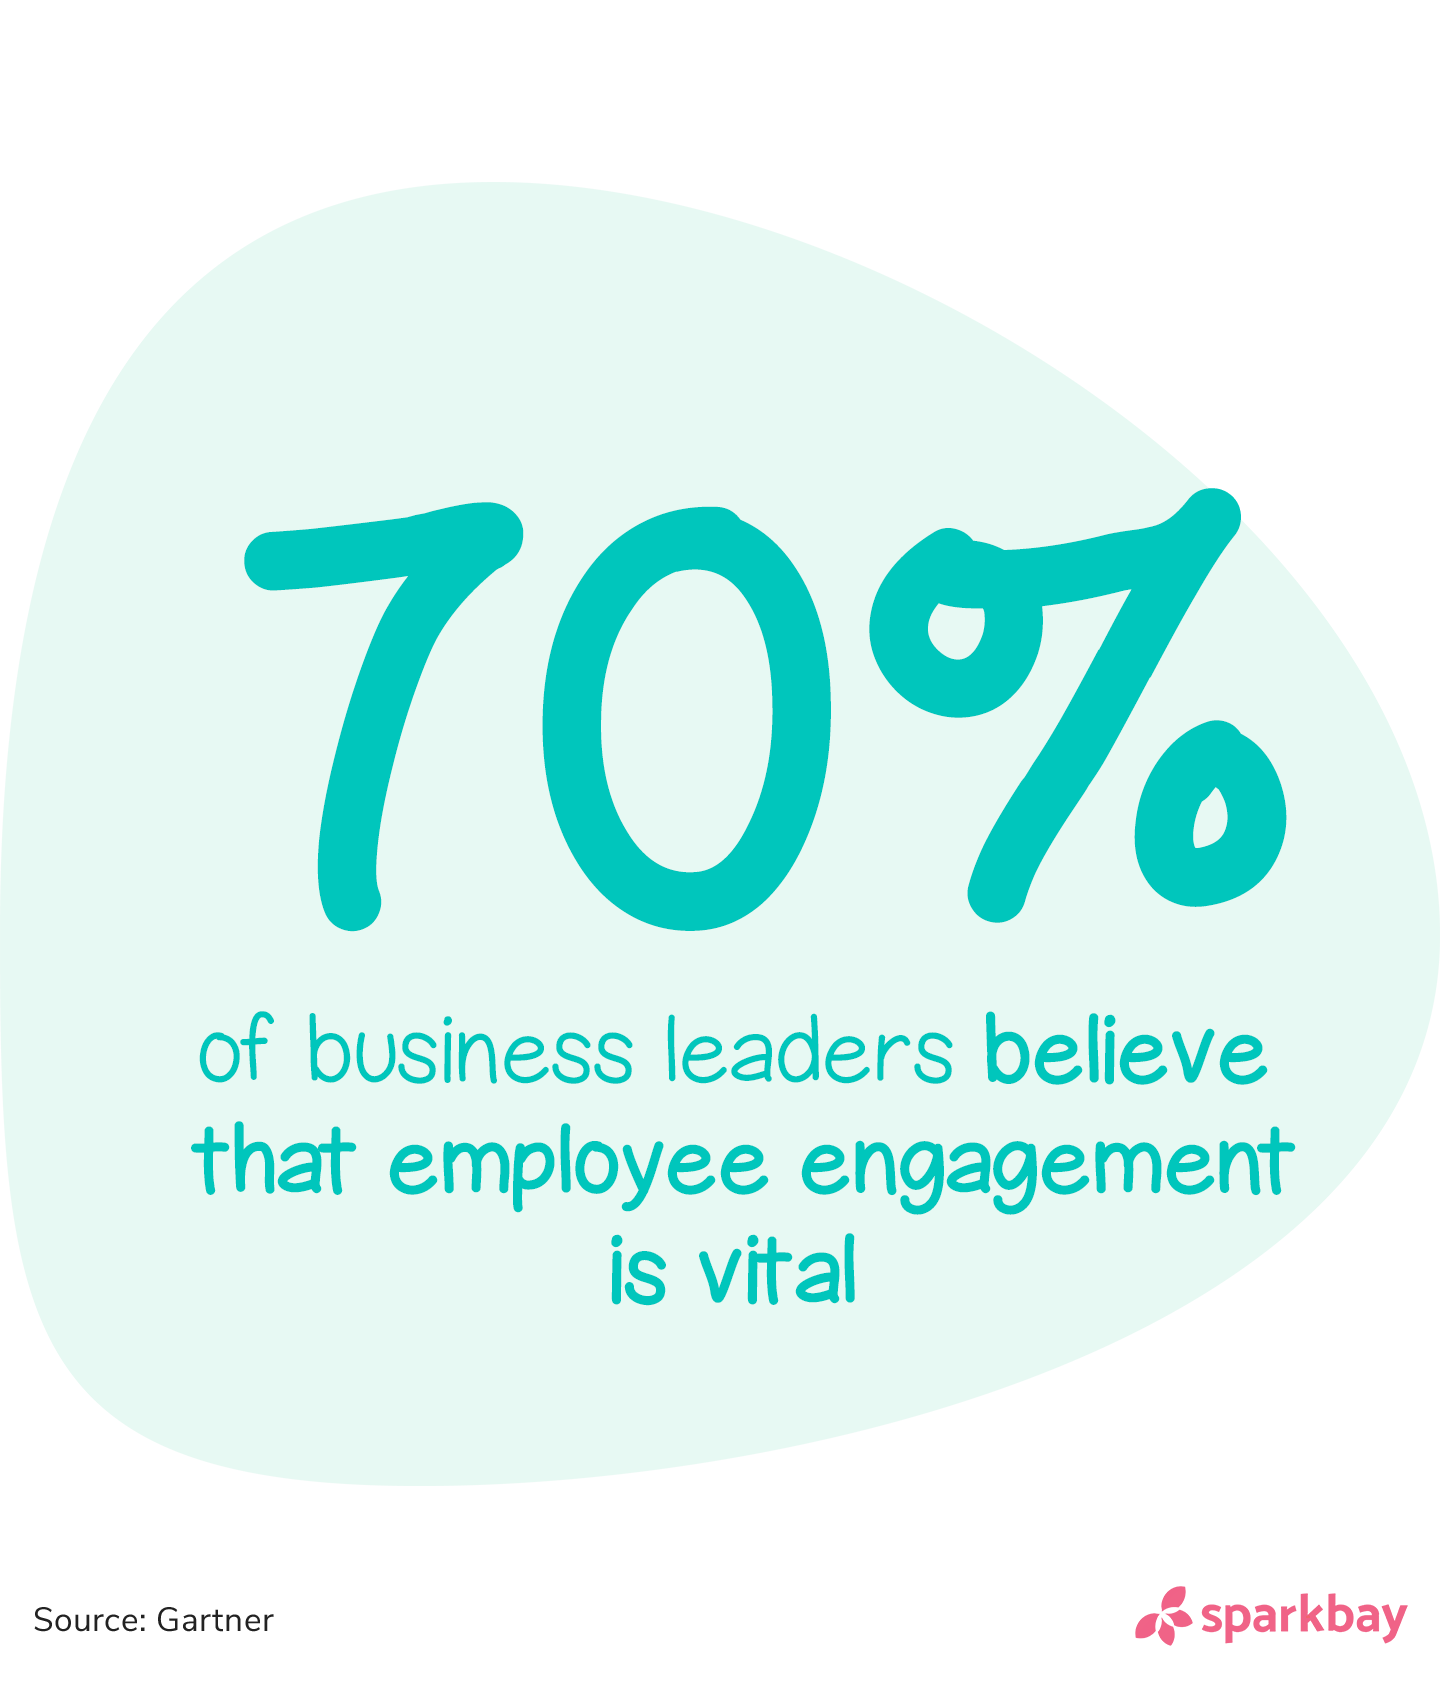 Employee engagement statistics: 70% of business leaders believe that employee engagement is vital.